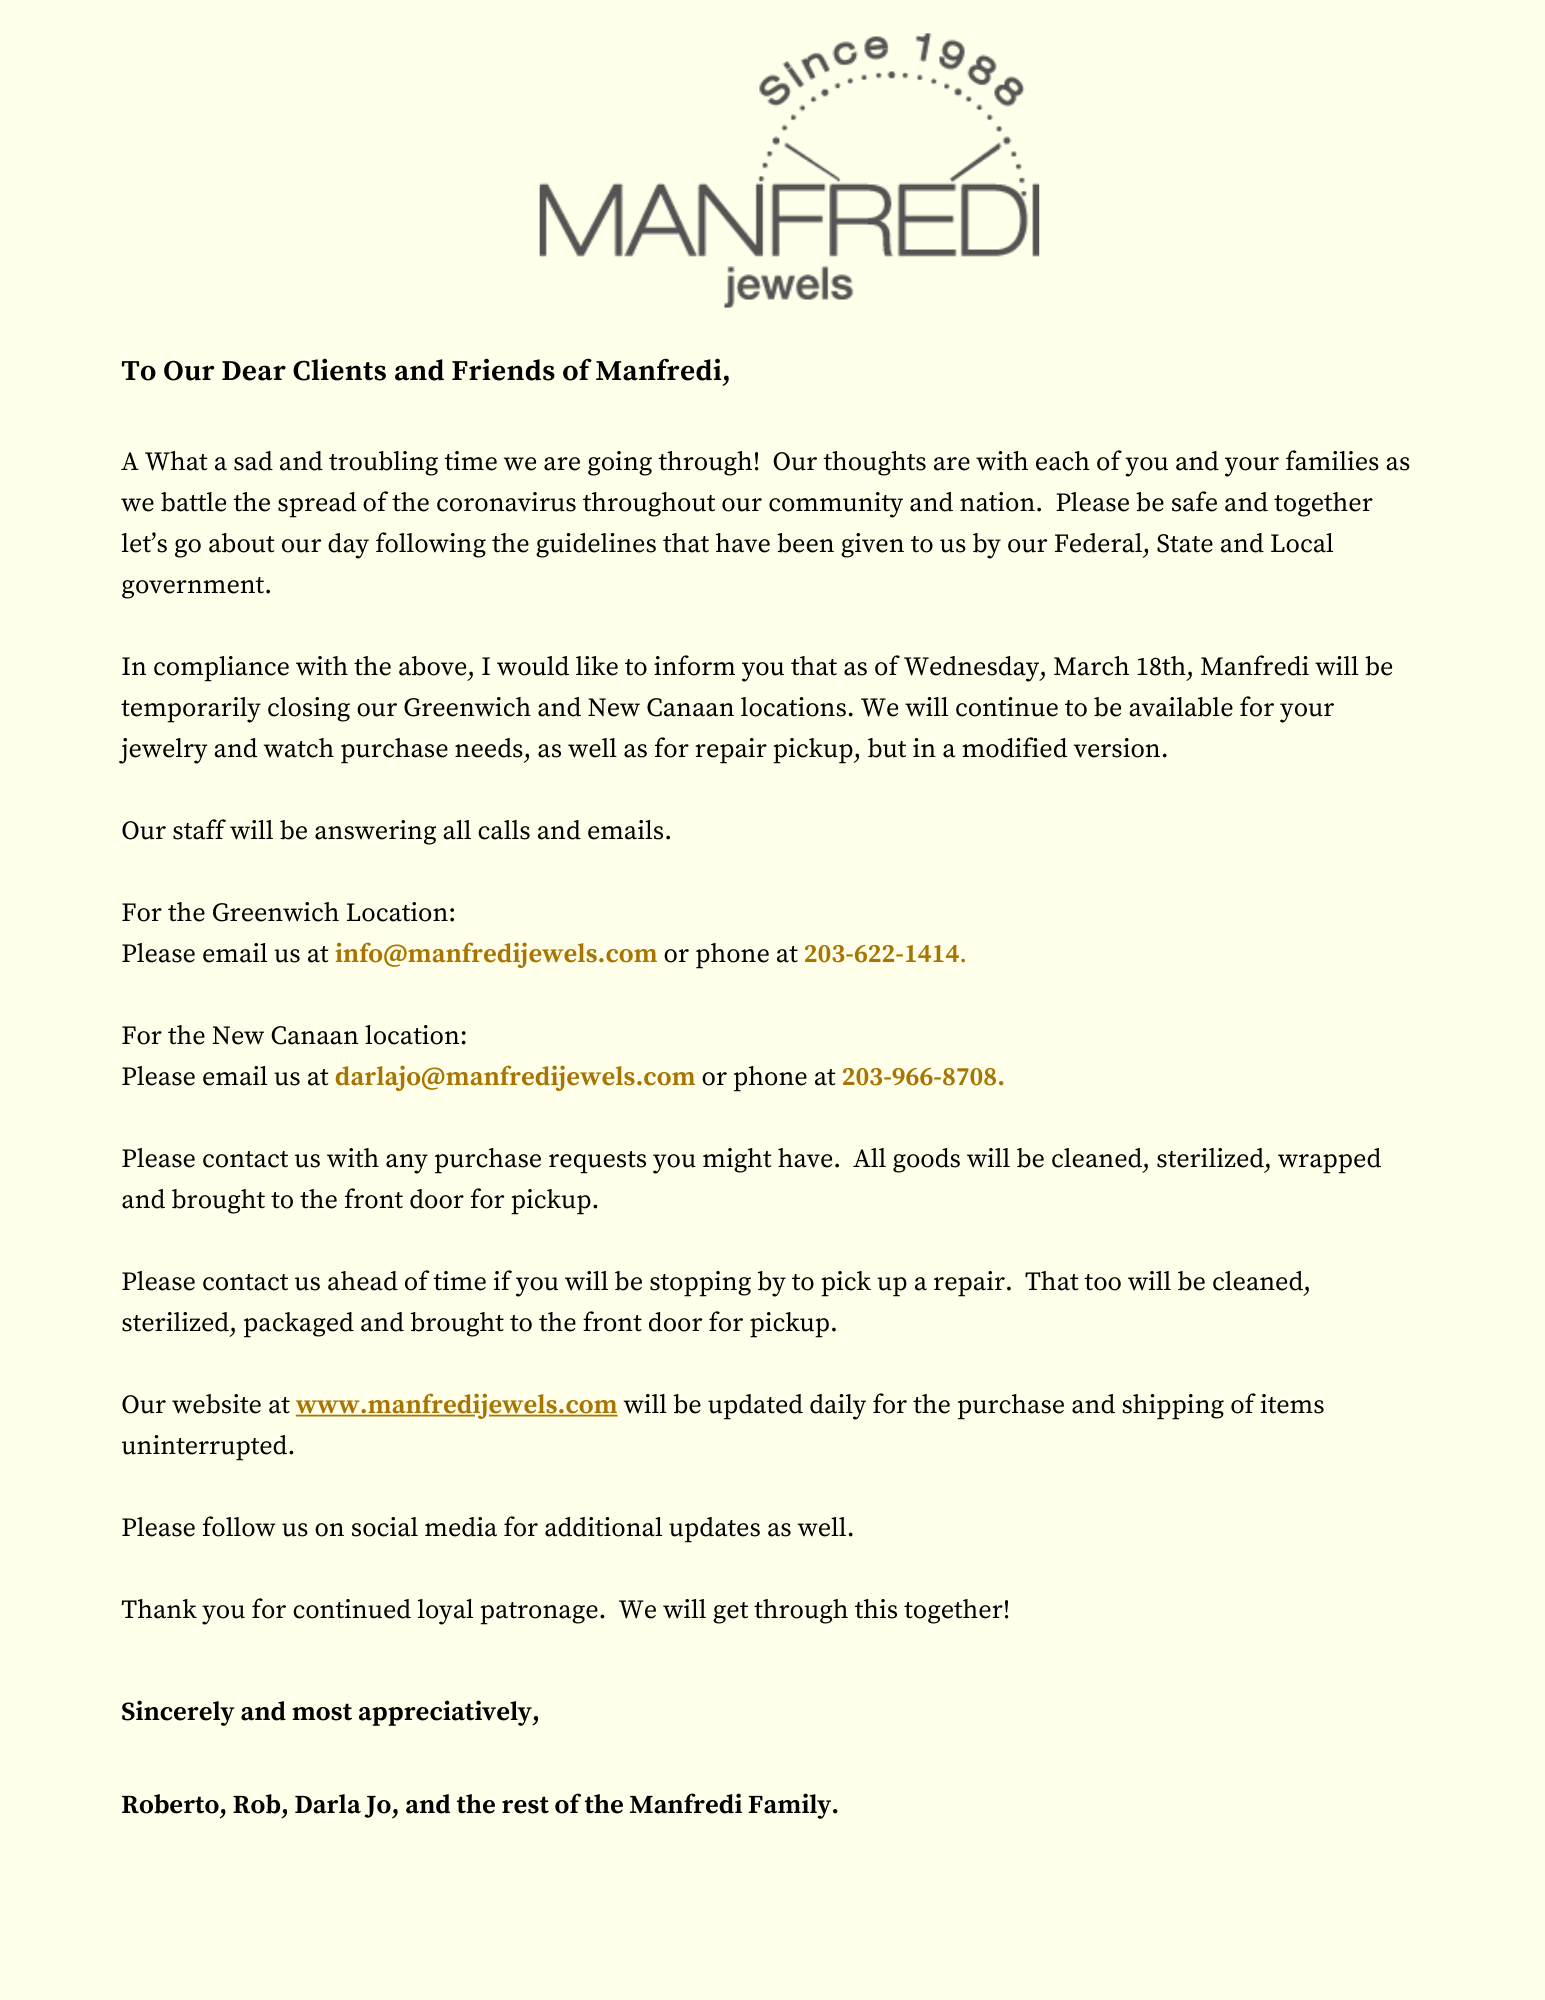 Important Message From Manfredi Jewels